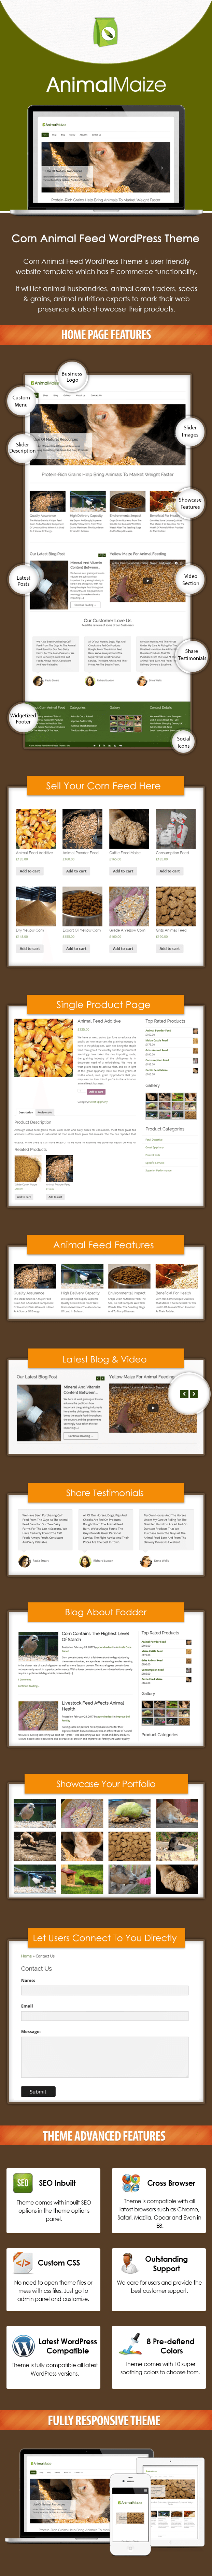 Corn Animal Feed WordPress Theme Sales